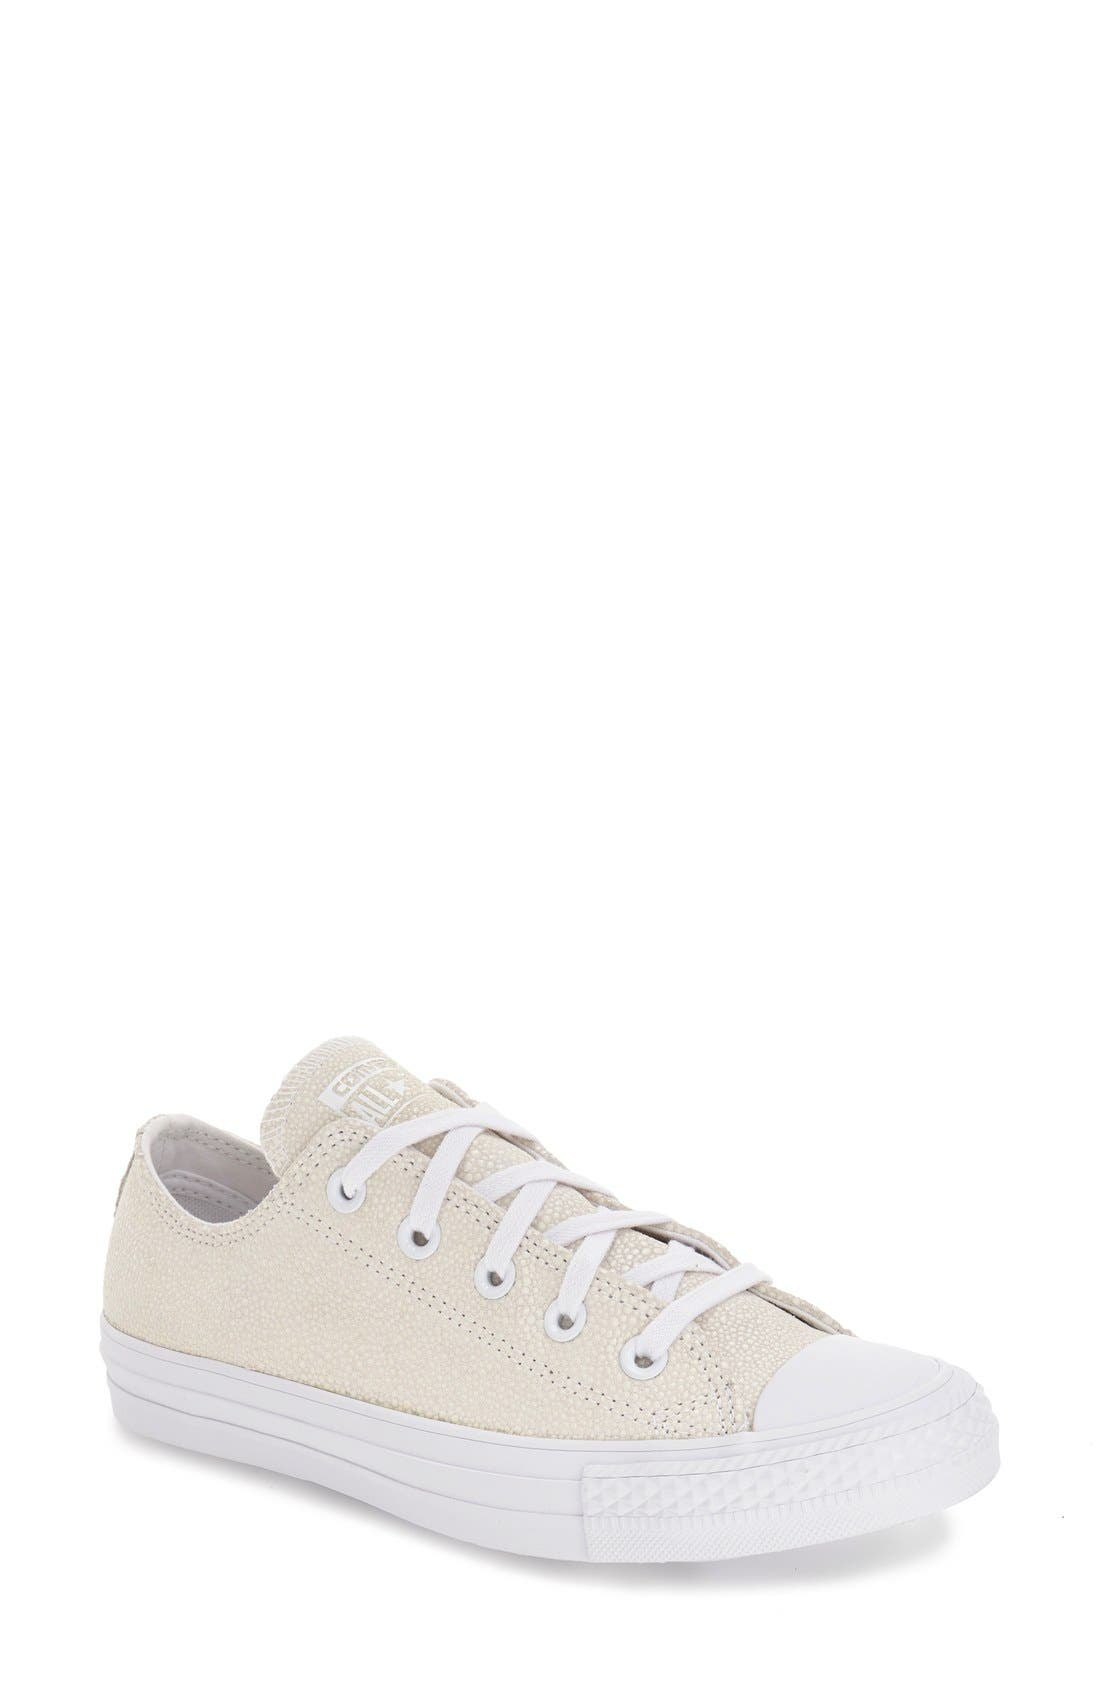 Main Image - Converse Chuck Taylor® All Star® 'Stingray - Ox' Low Top Sneaker (Women)